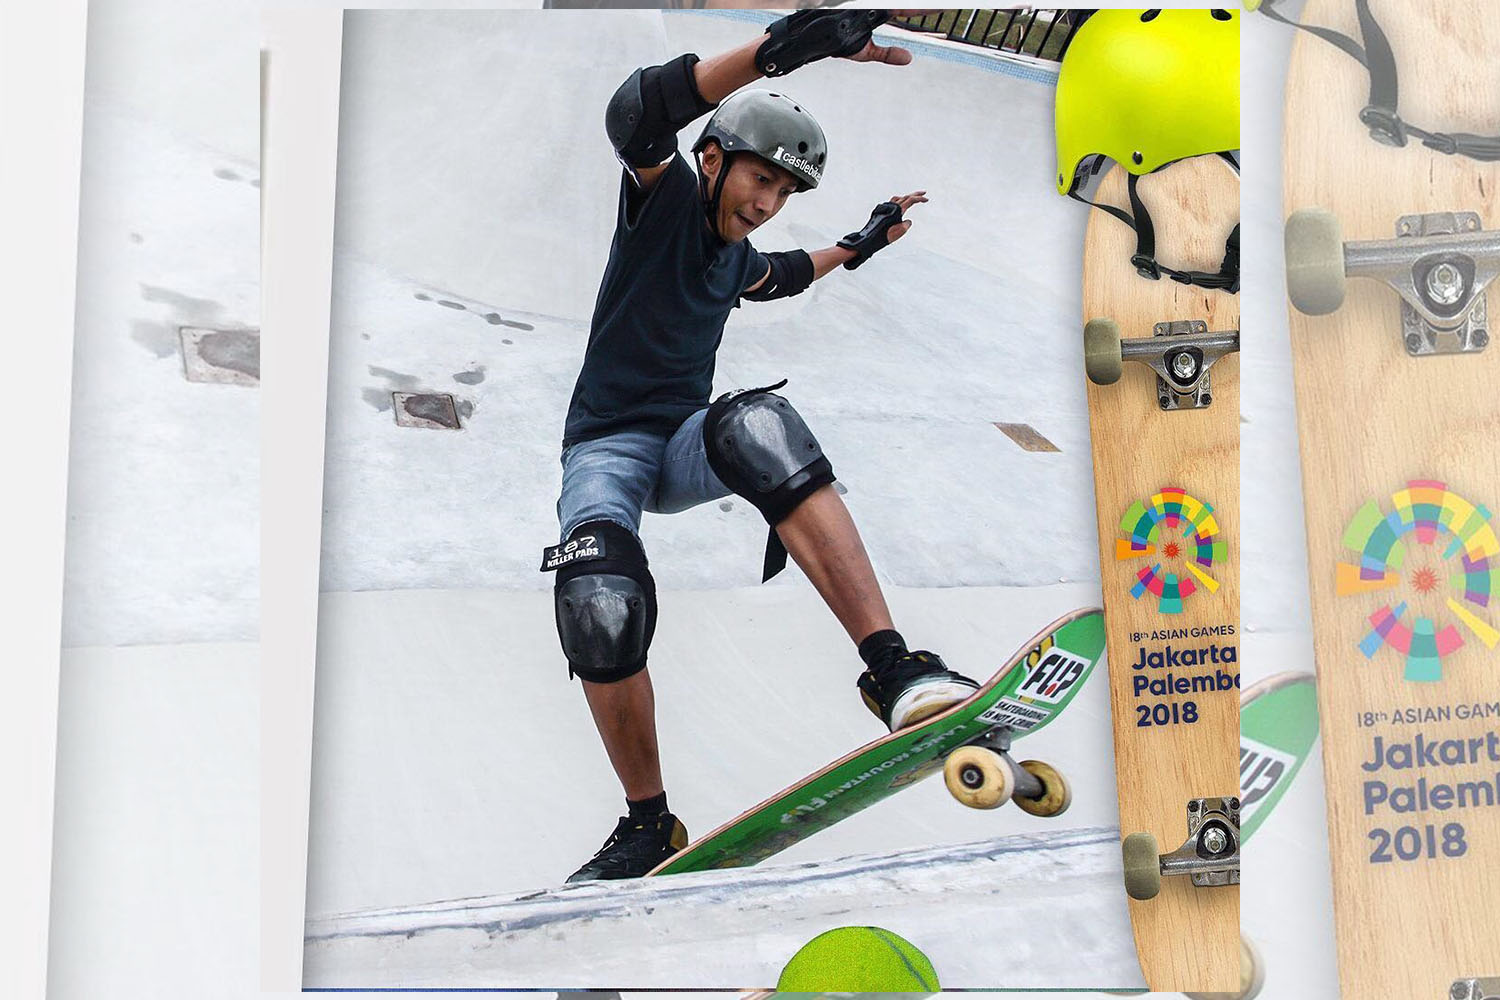 ASIAN GAMES 2018 SKATEBOARD FEATURED IMAGE - Asian Games 2018 Skateboard